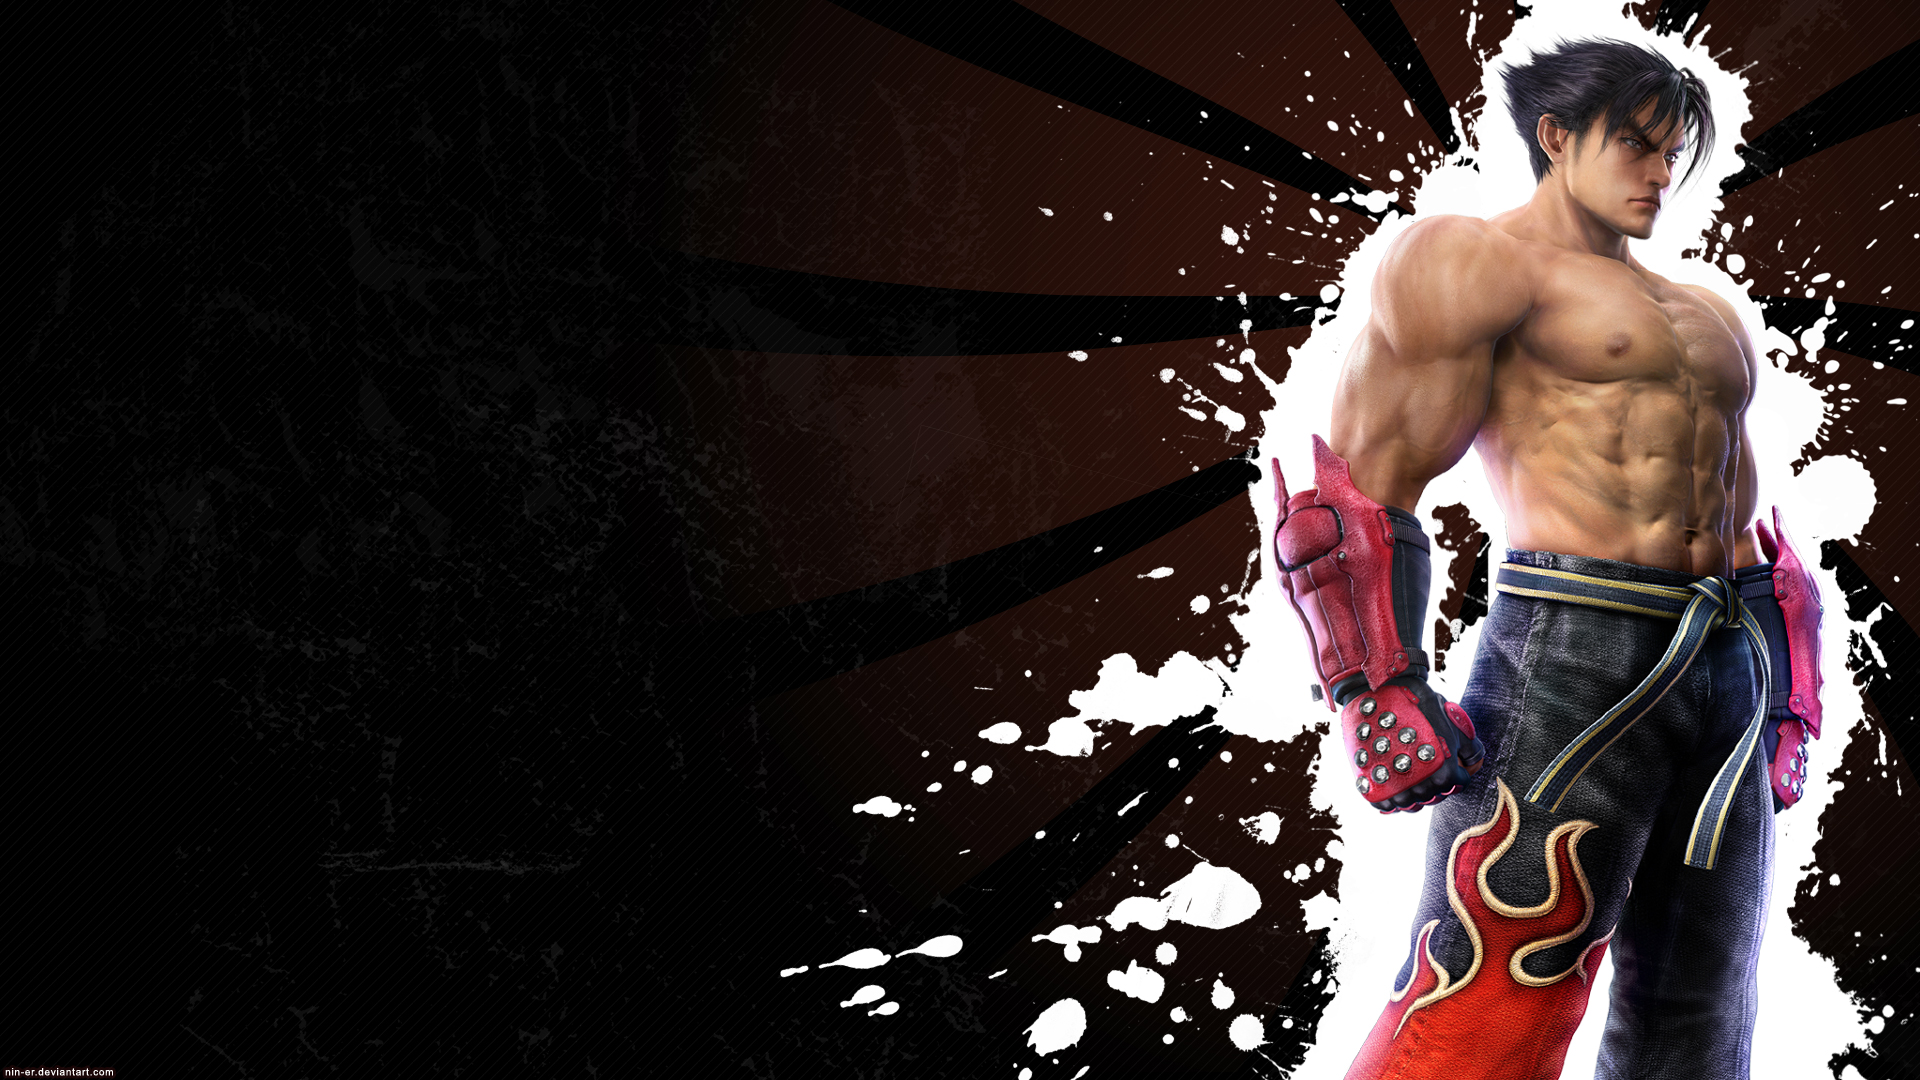 Tekken 6 Wallpaper Jin 1920x1080